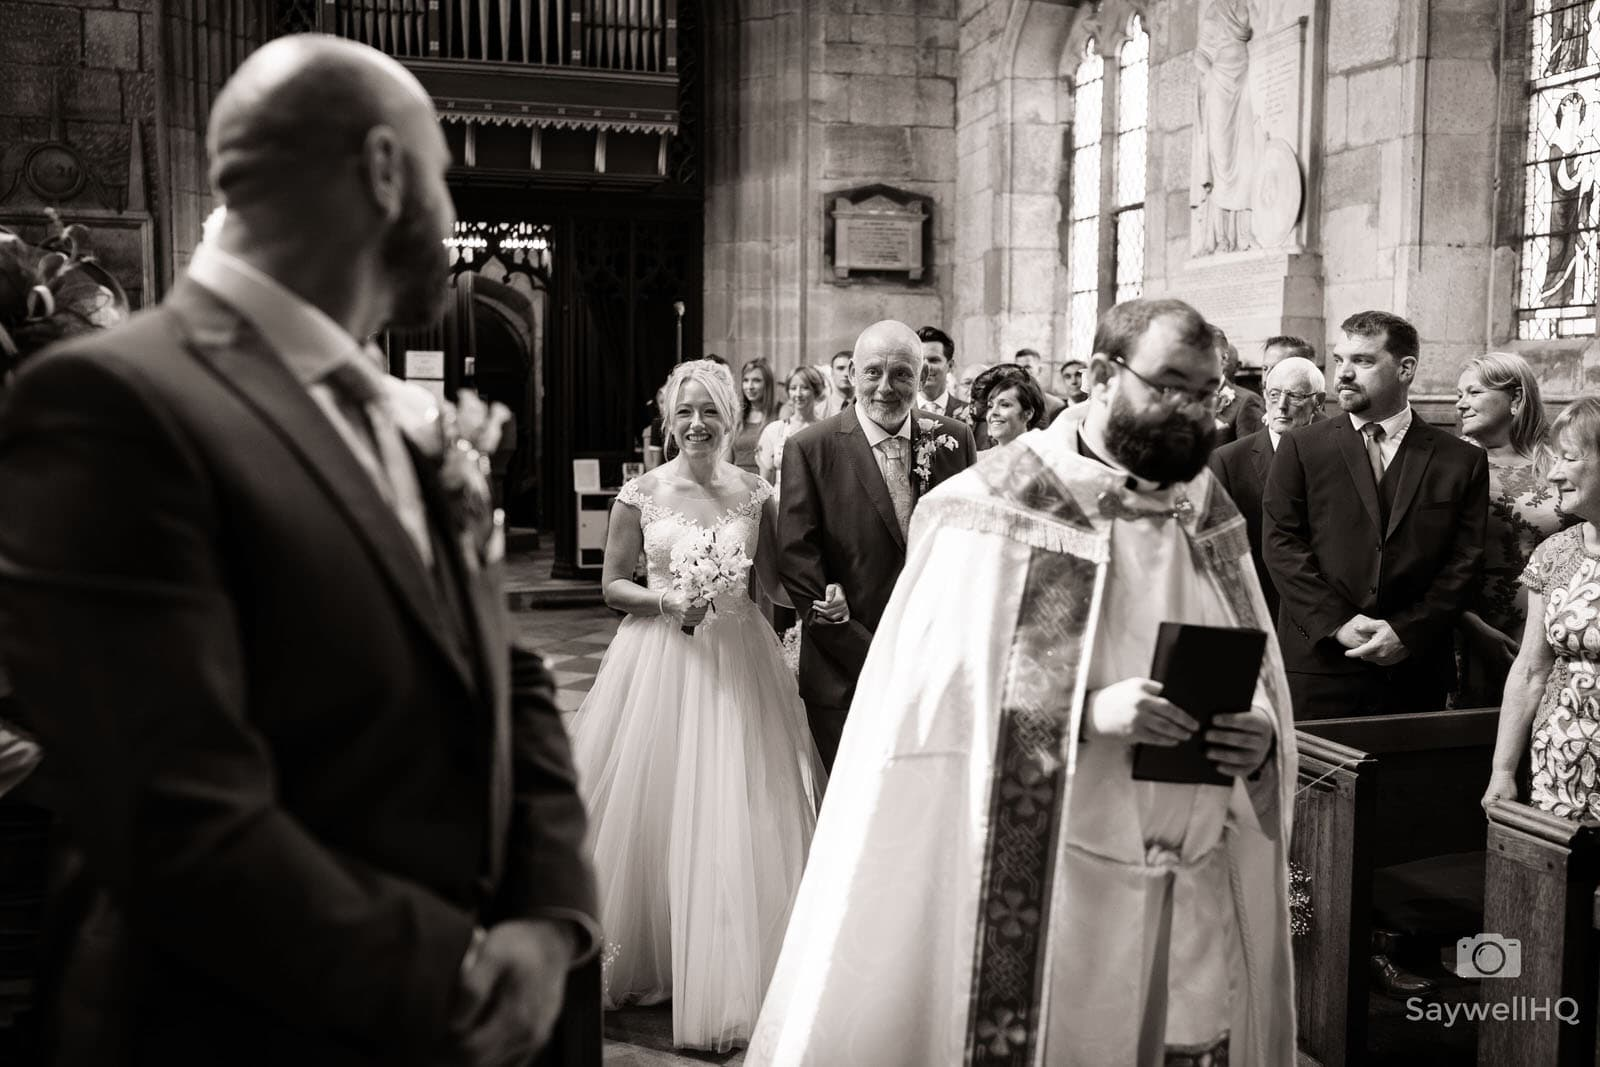 Elvaston Castle Wedding Photography - Bride and Father of the bride walking down the aisle